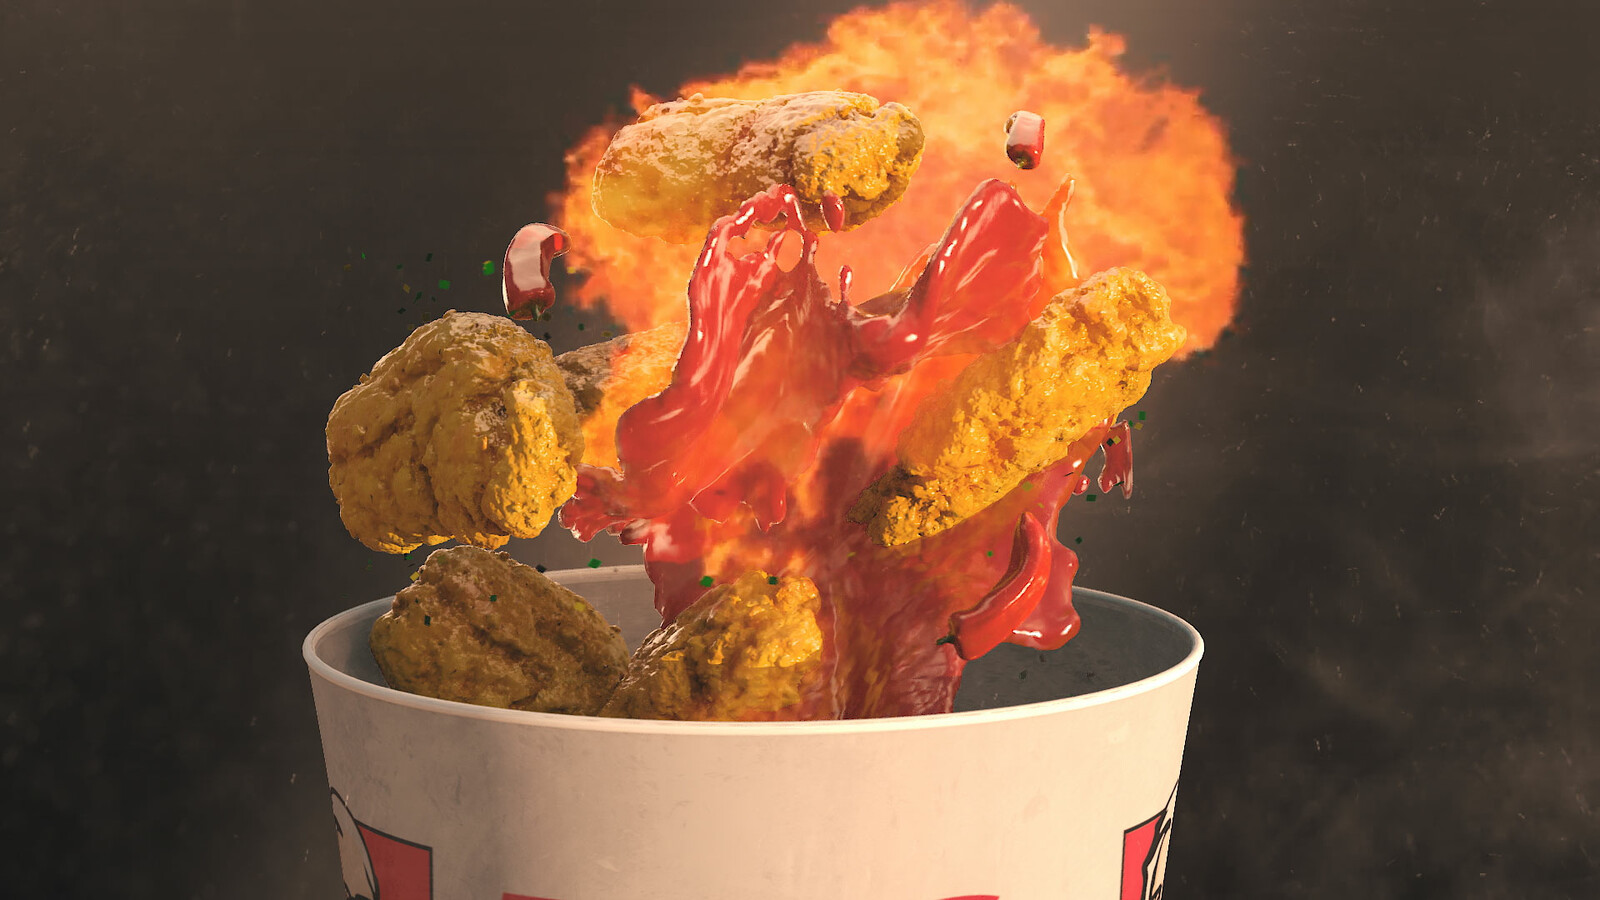 KFC FIRECRACKER VFX BREAKDOWN